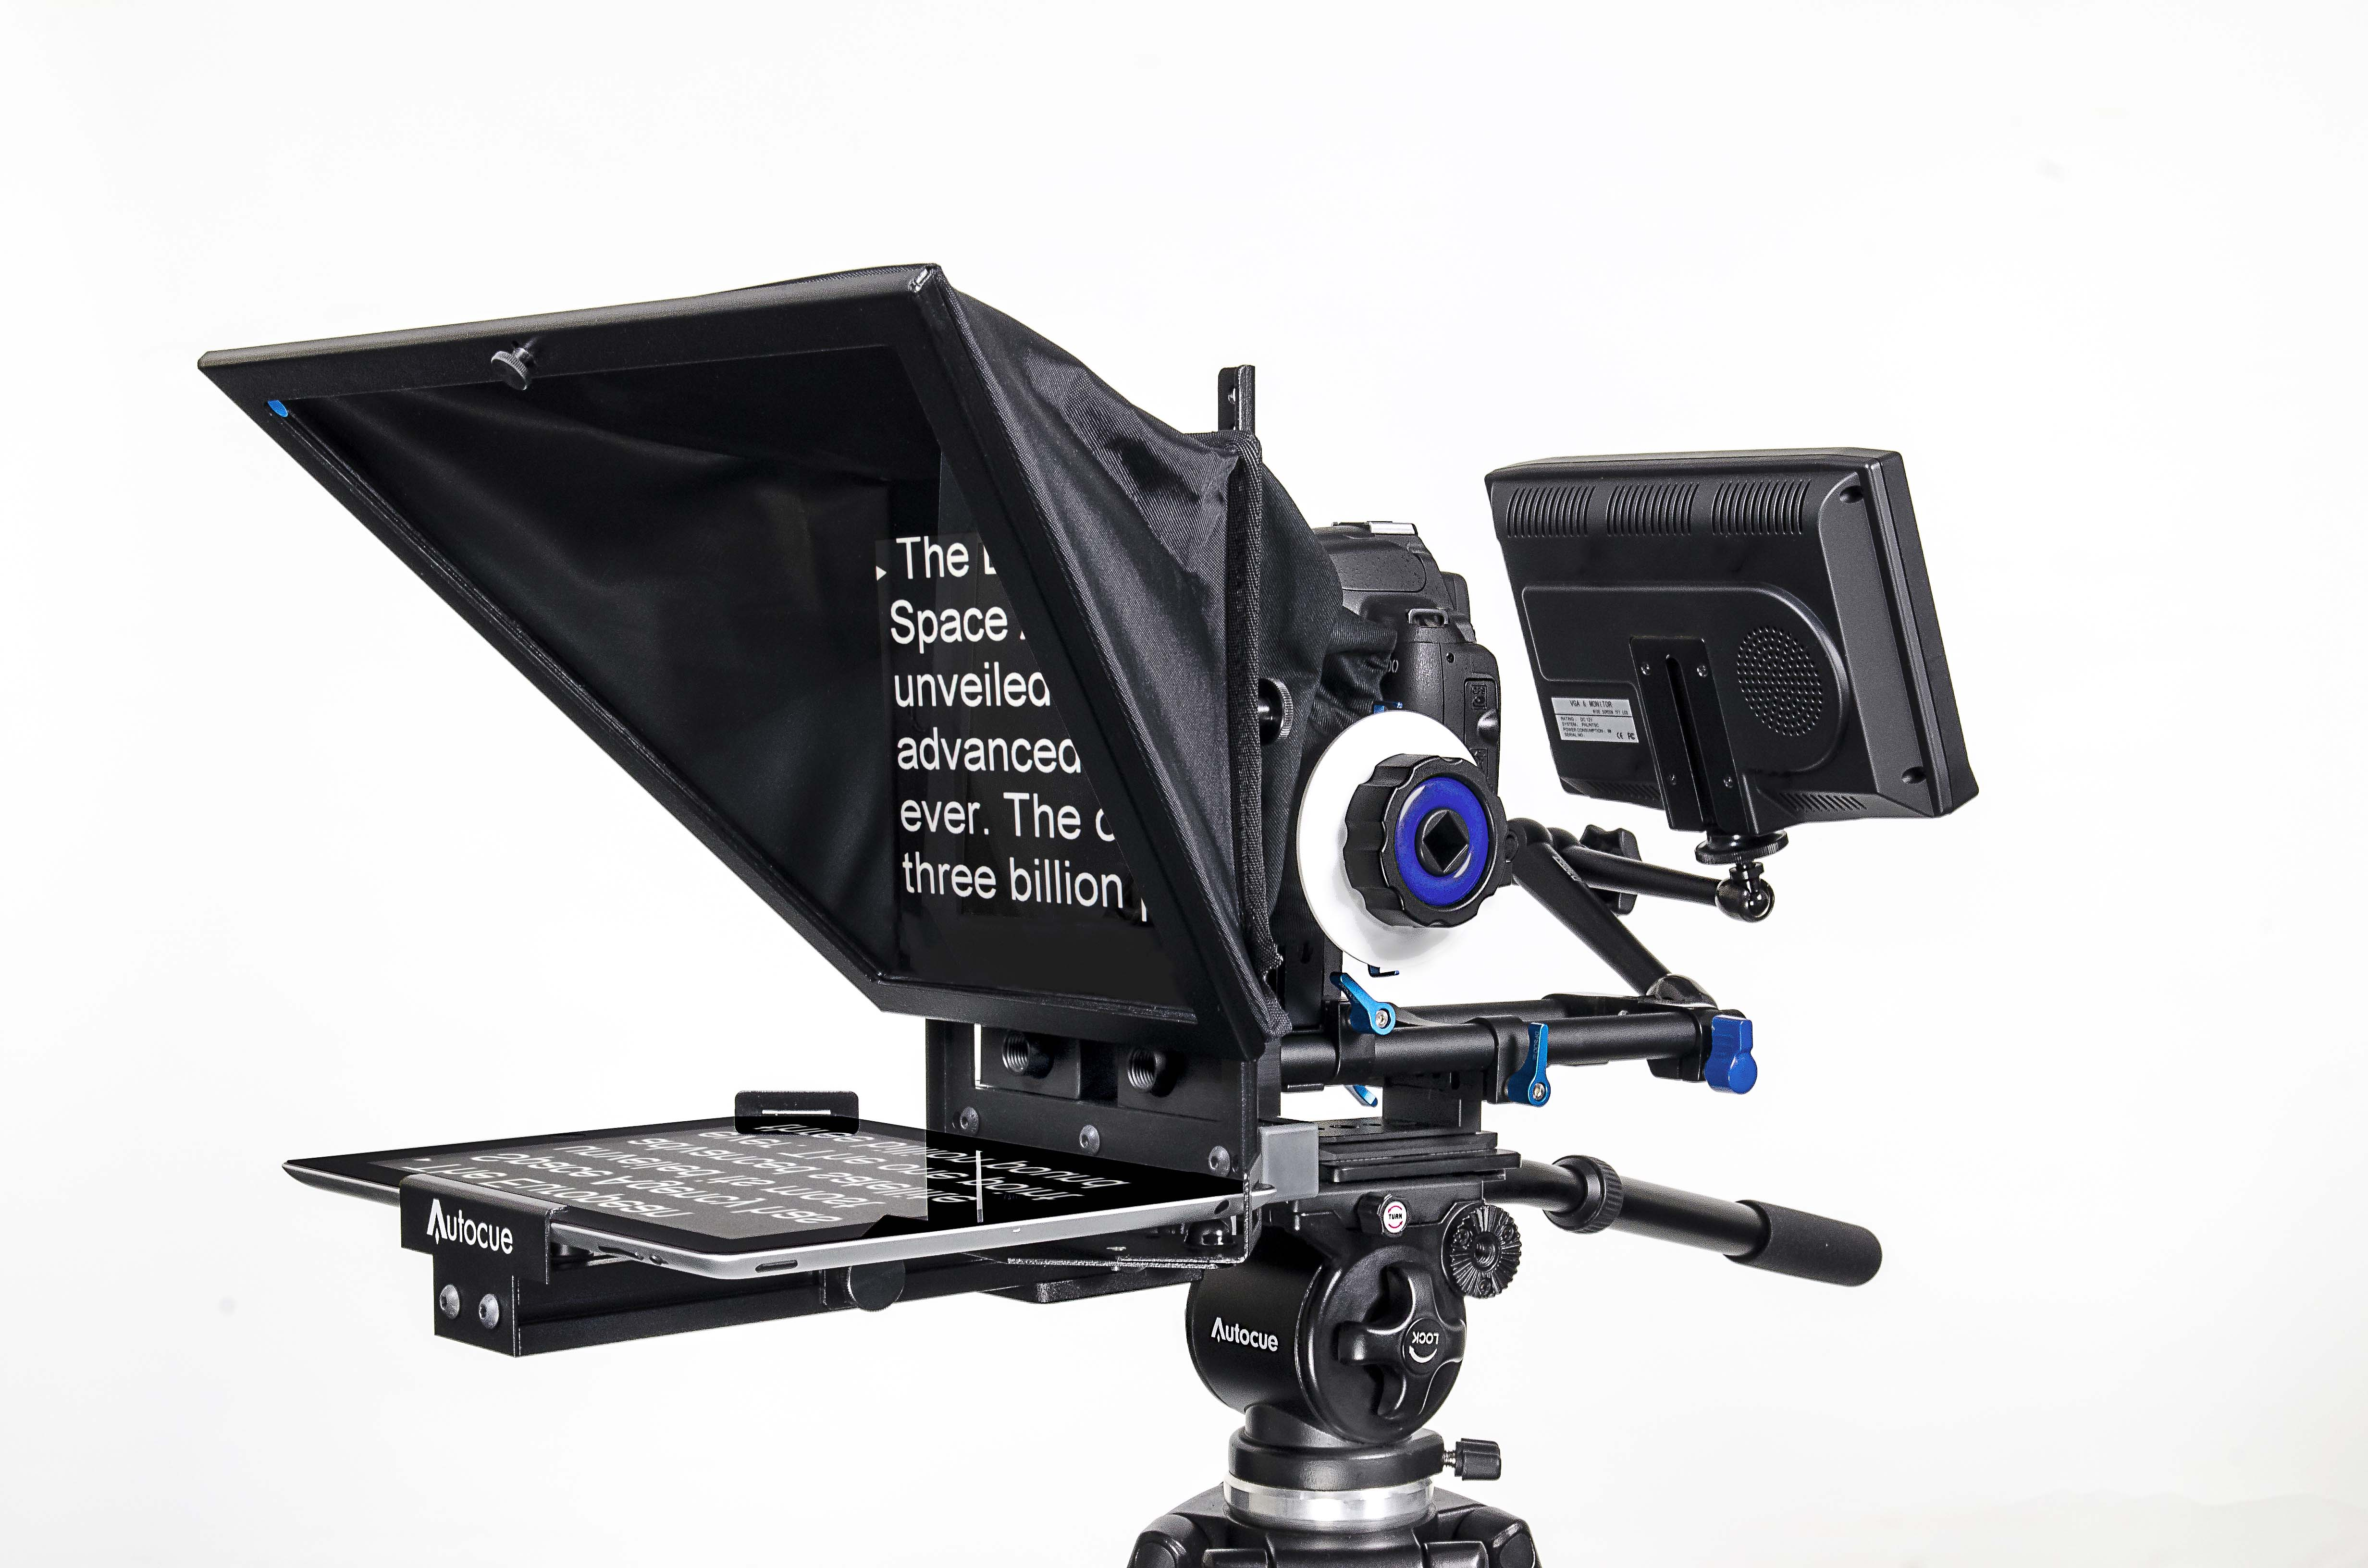 The proper use of a Teleprompter for morning announcements© autocue